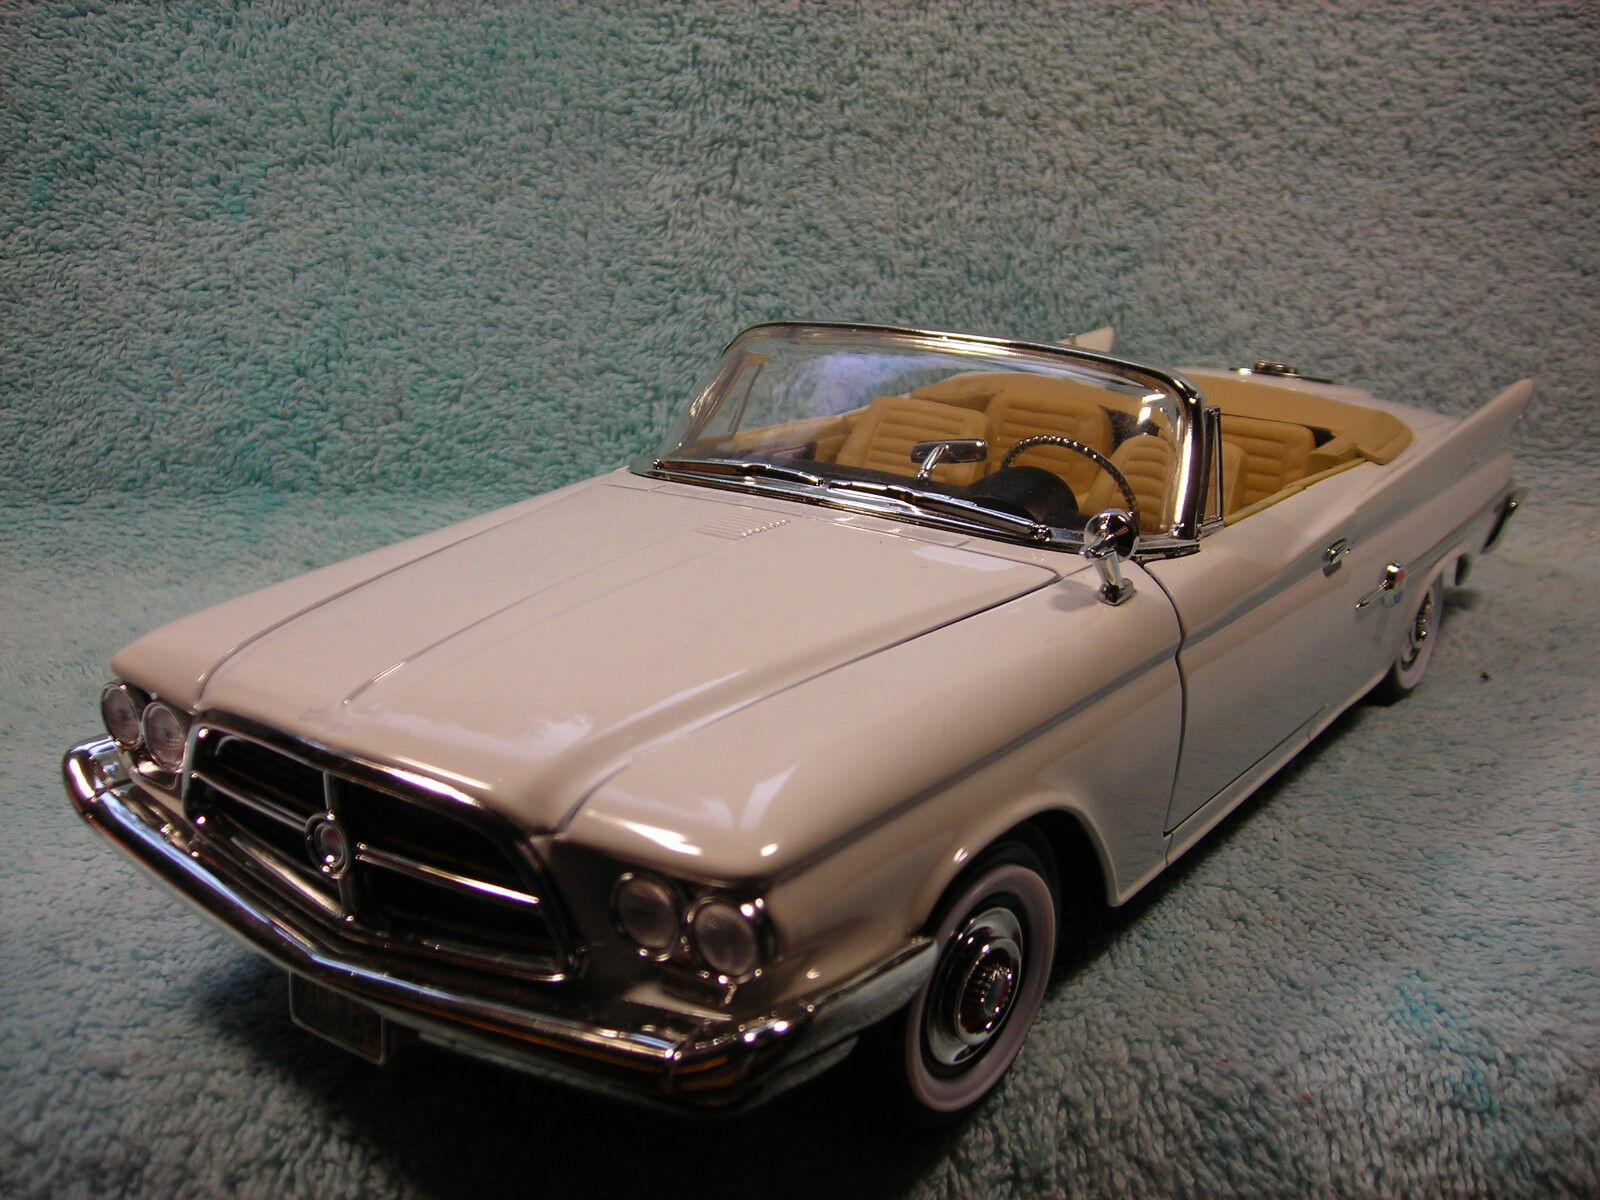 1 18SCALE DIECAST 1960 CHYSLER 300F CABRIOLET IN bianca BY ROAD SIGNATURE.